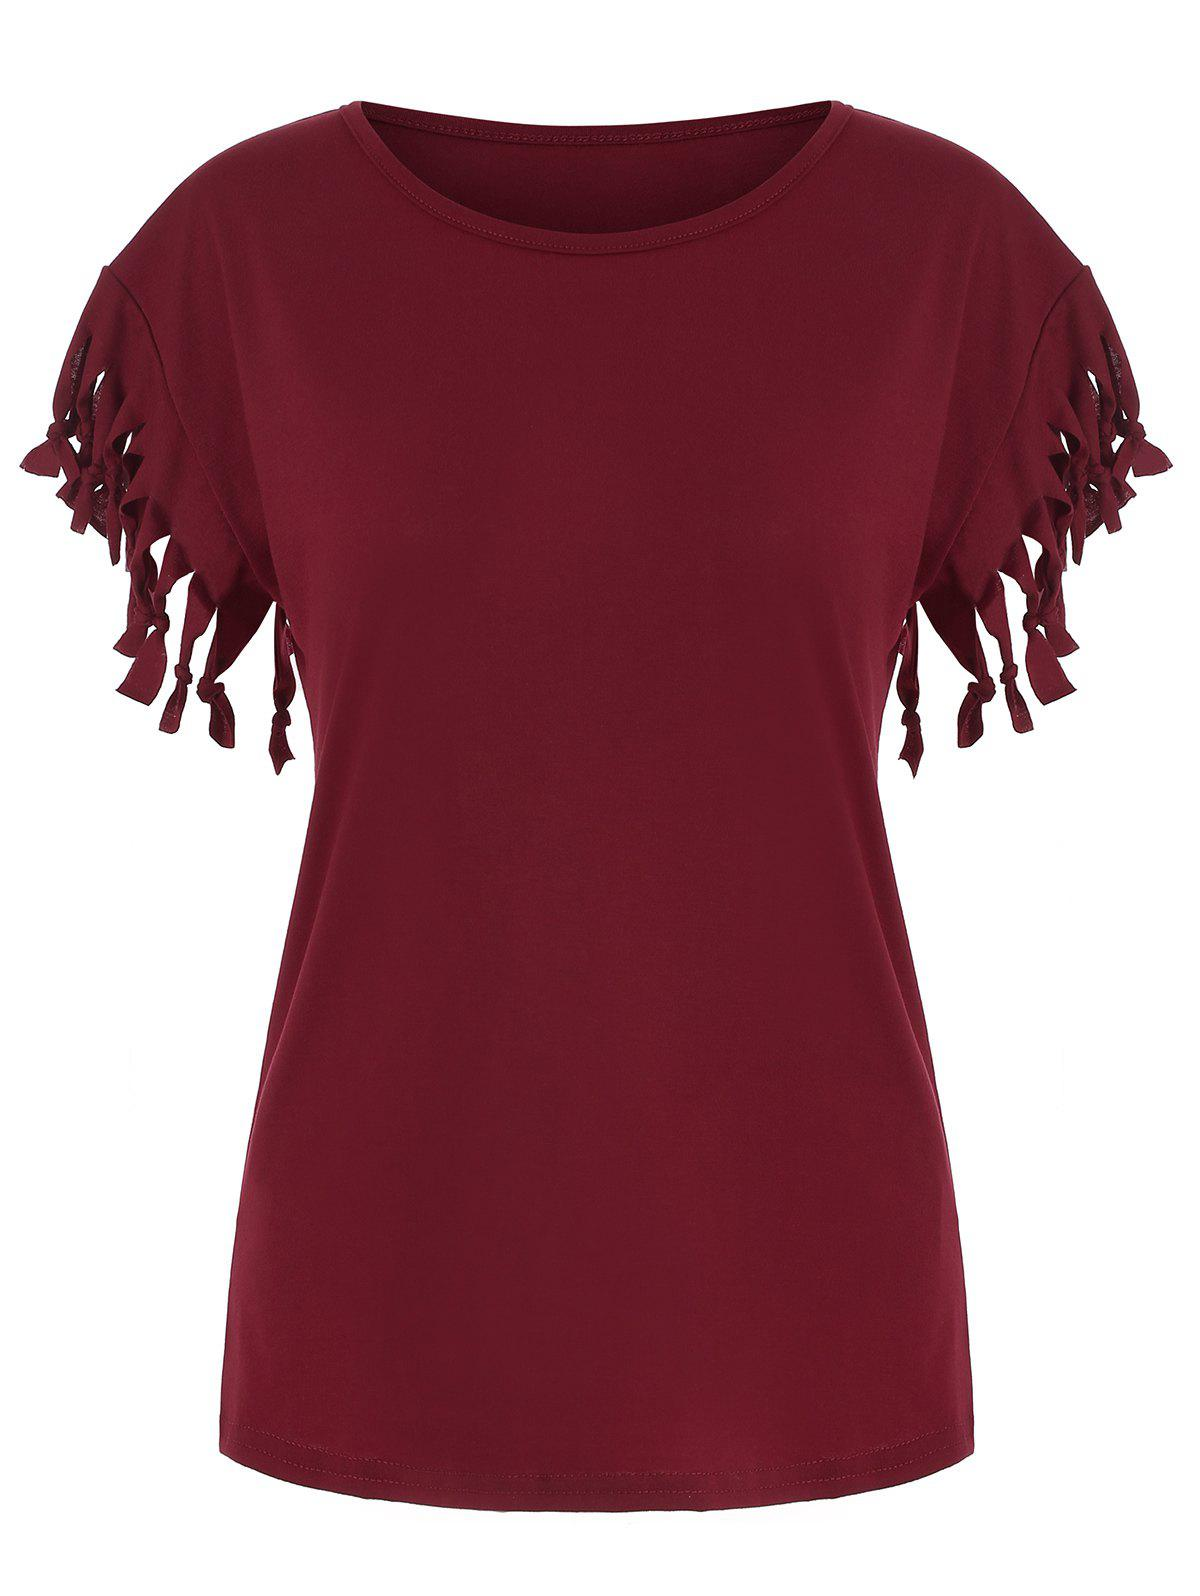 Shop Fringed Solid Casual T-shirt